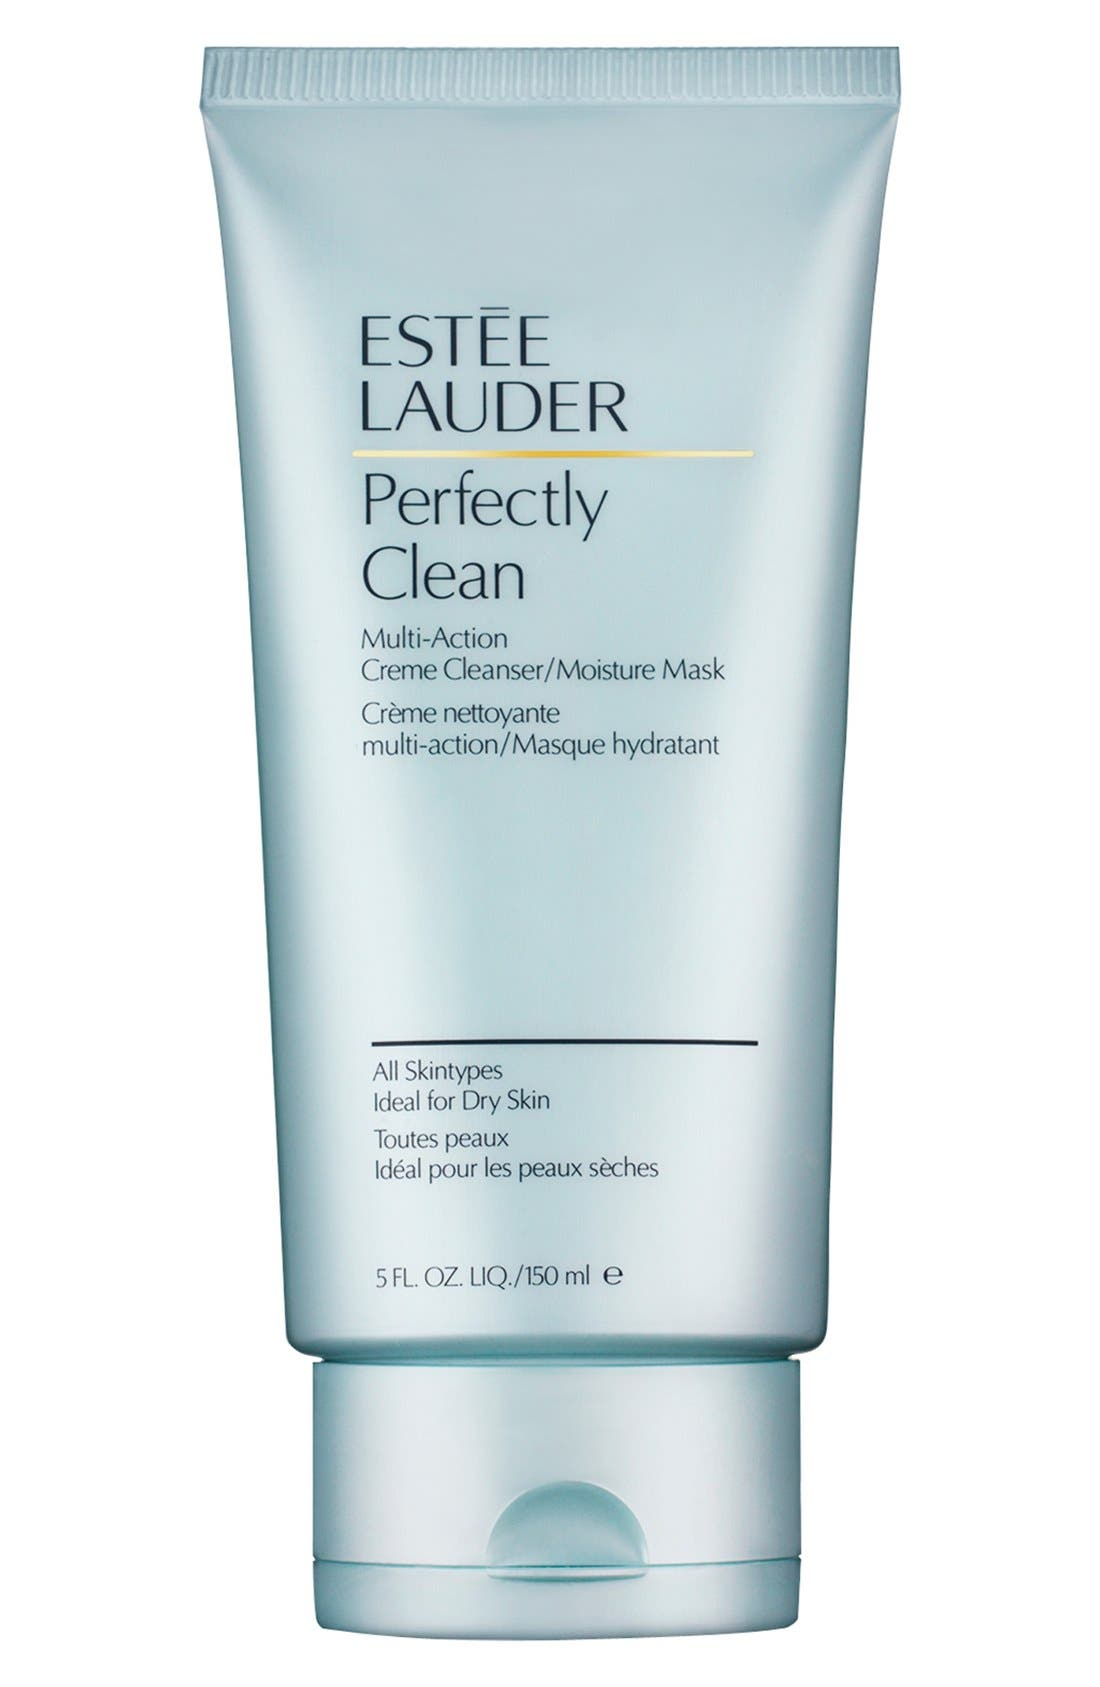 Perfectly Clean Multi-Action Creme Cleanser/Moisture Mask,                             Main thumbnail 1, color,                             NO COLOR